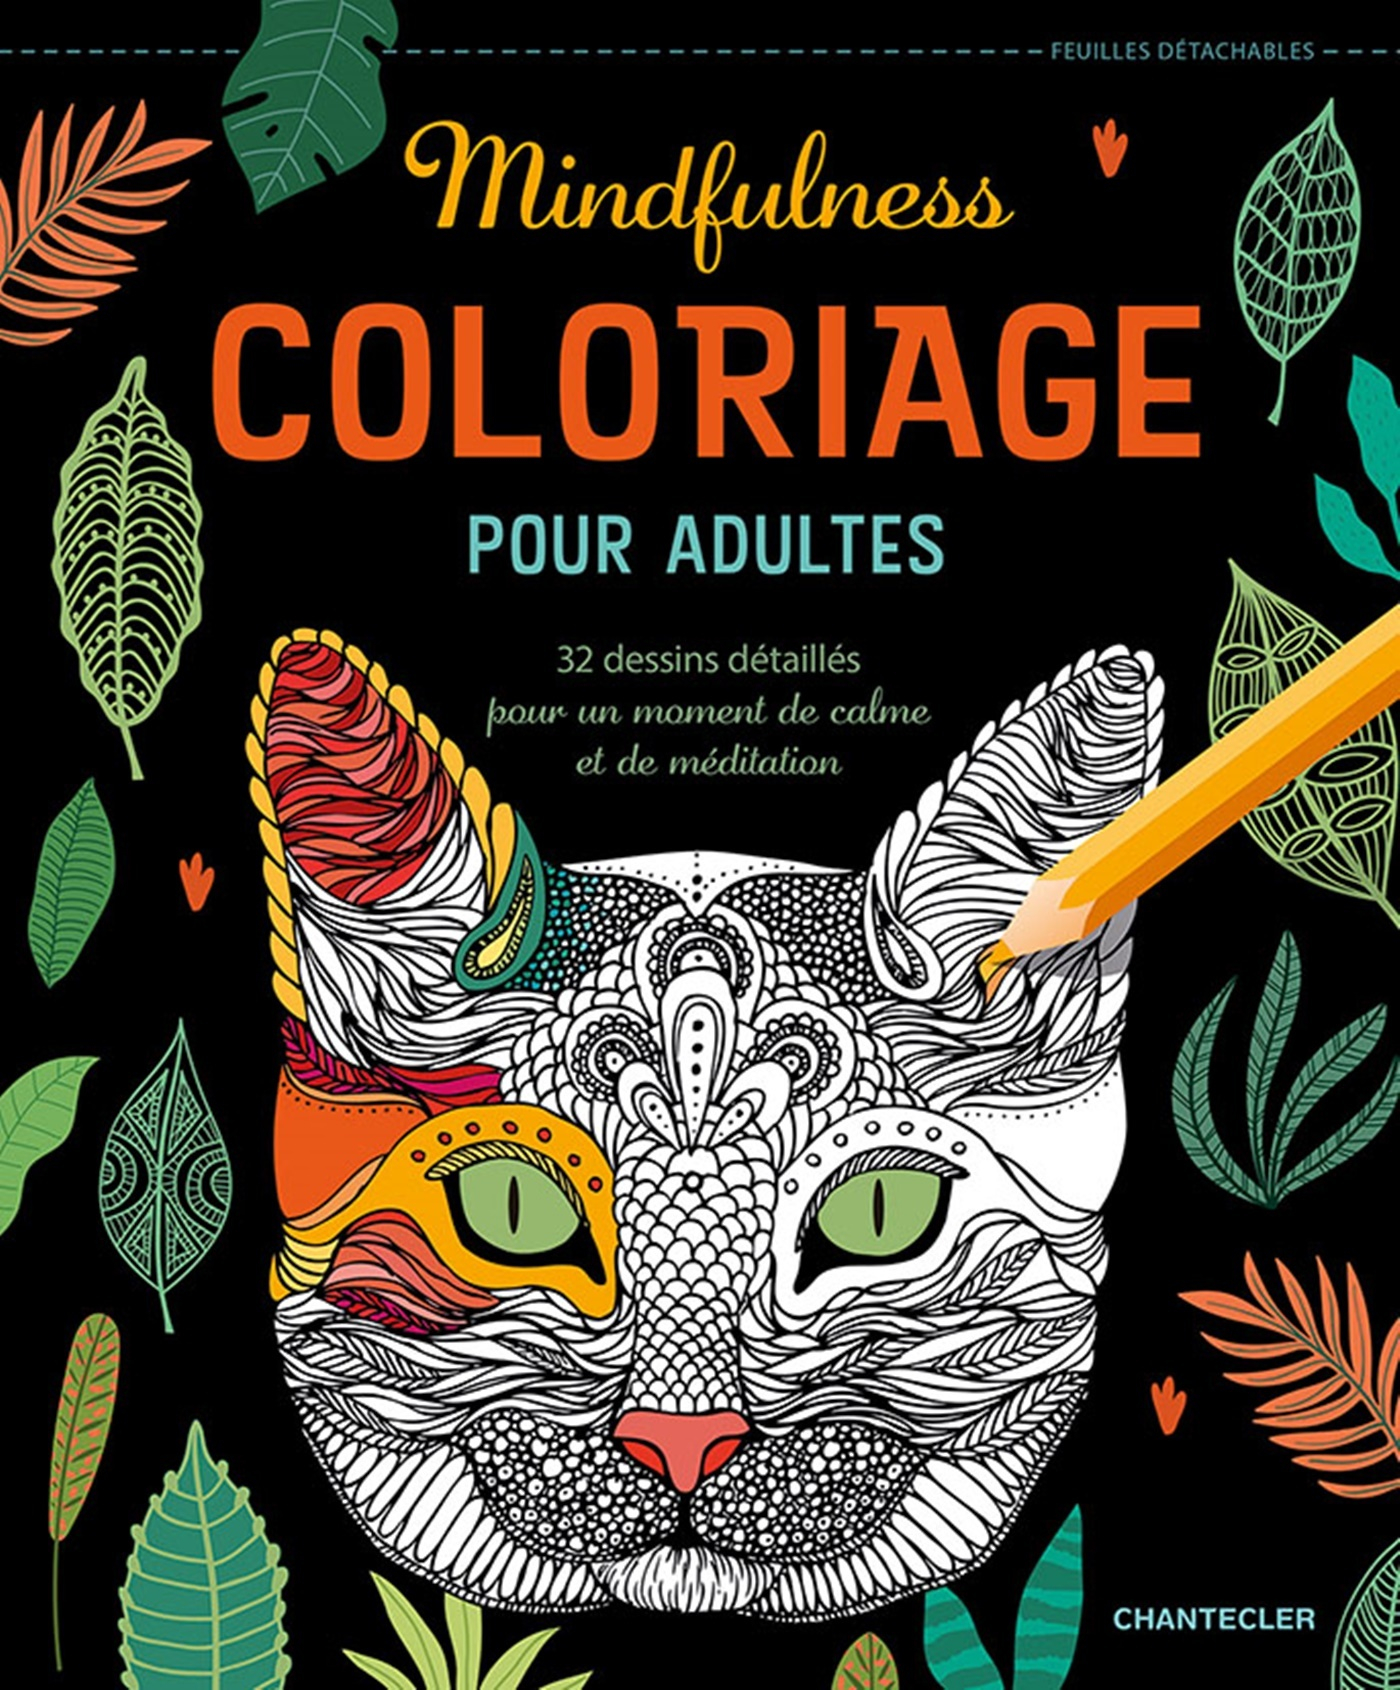 COLORIAGE POUR ADULTES - MINDFULNESS